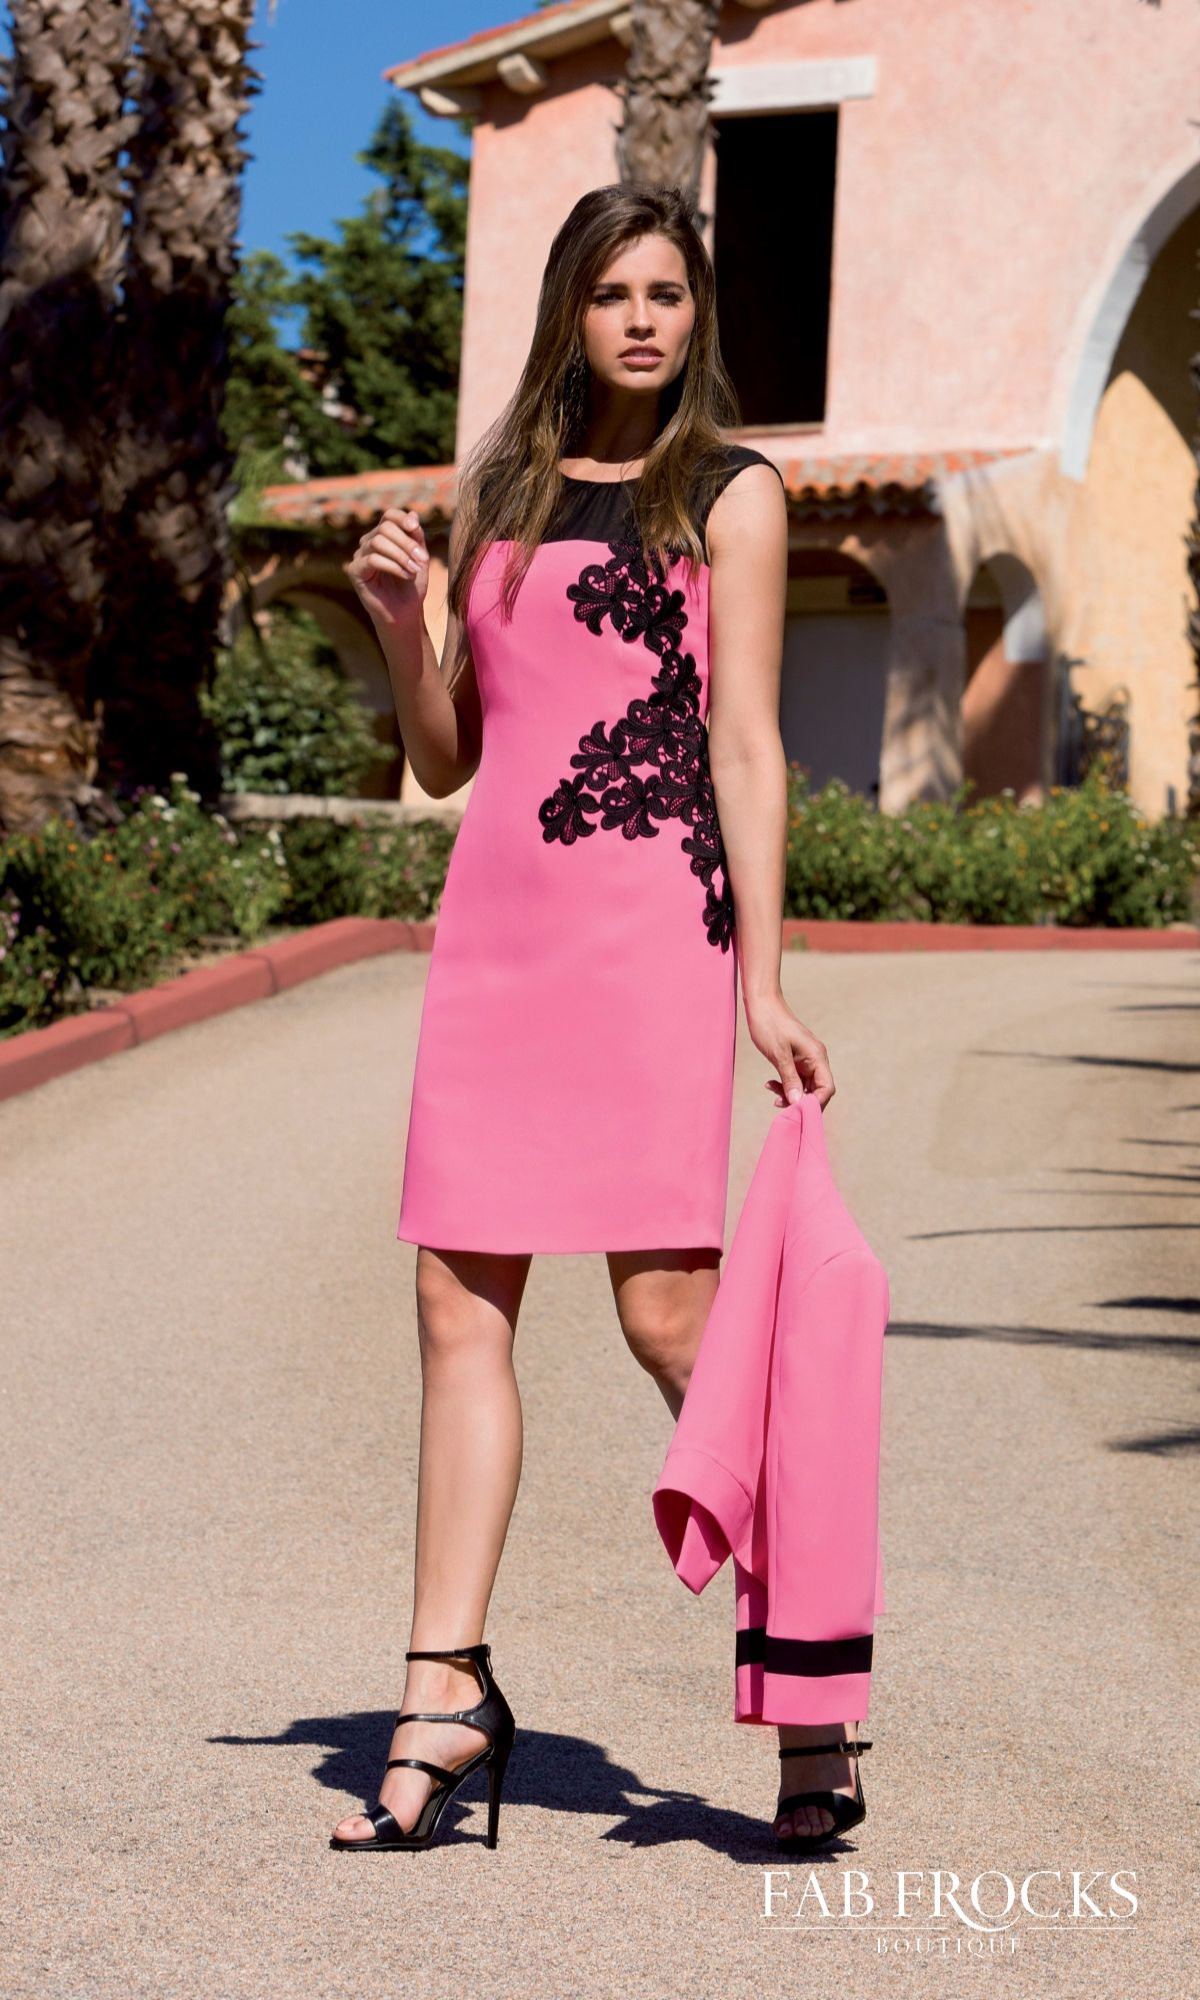 Fab Frocks Boutique-Image-51